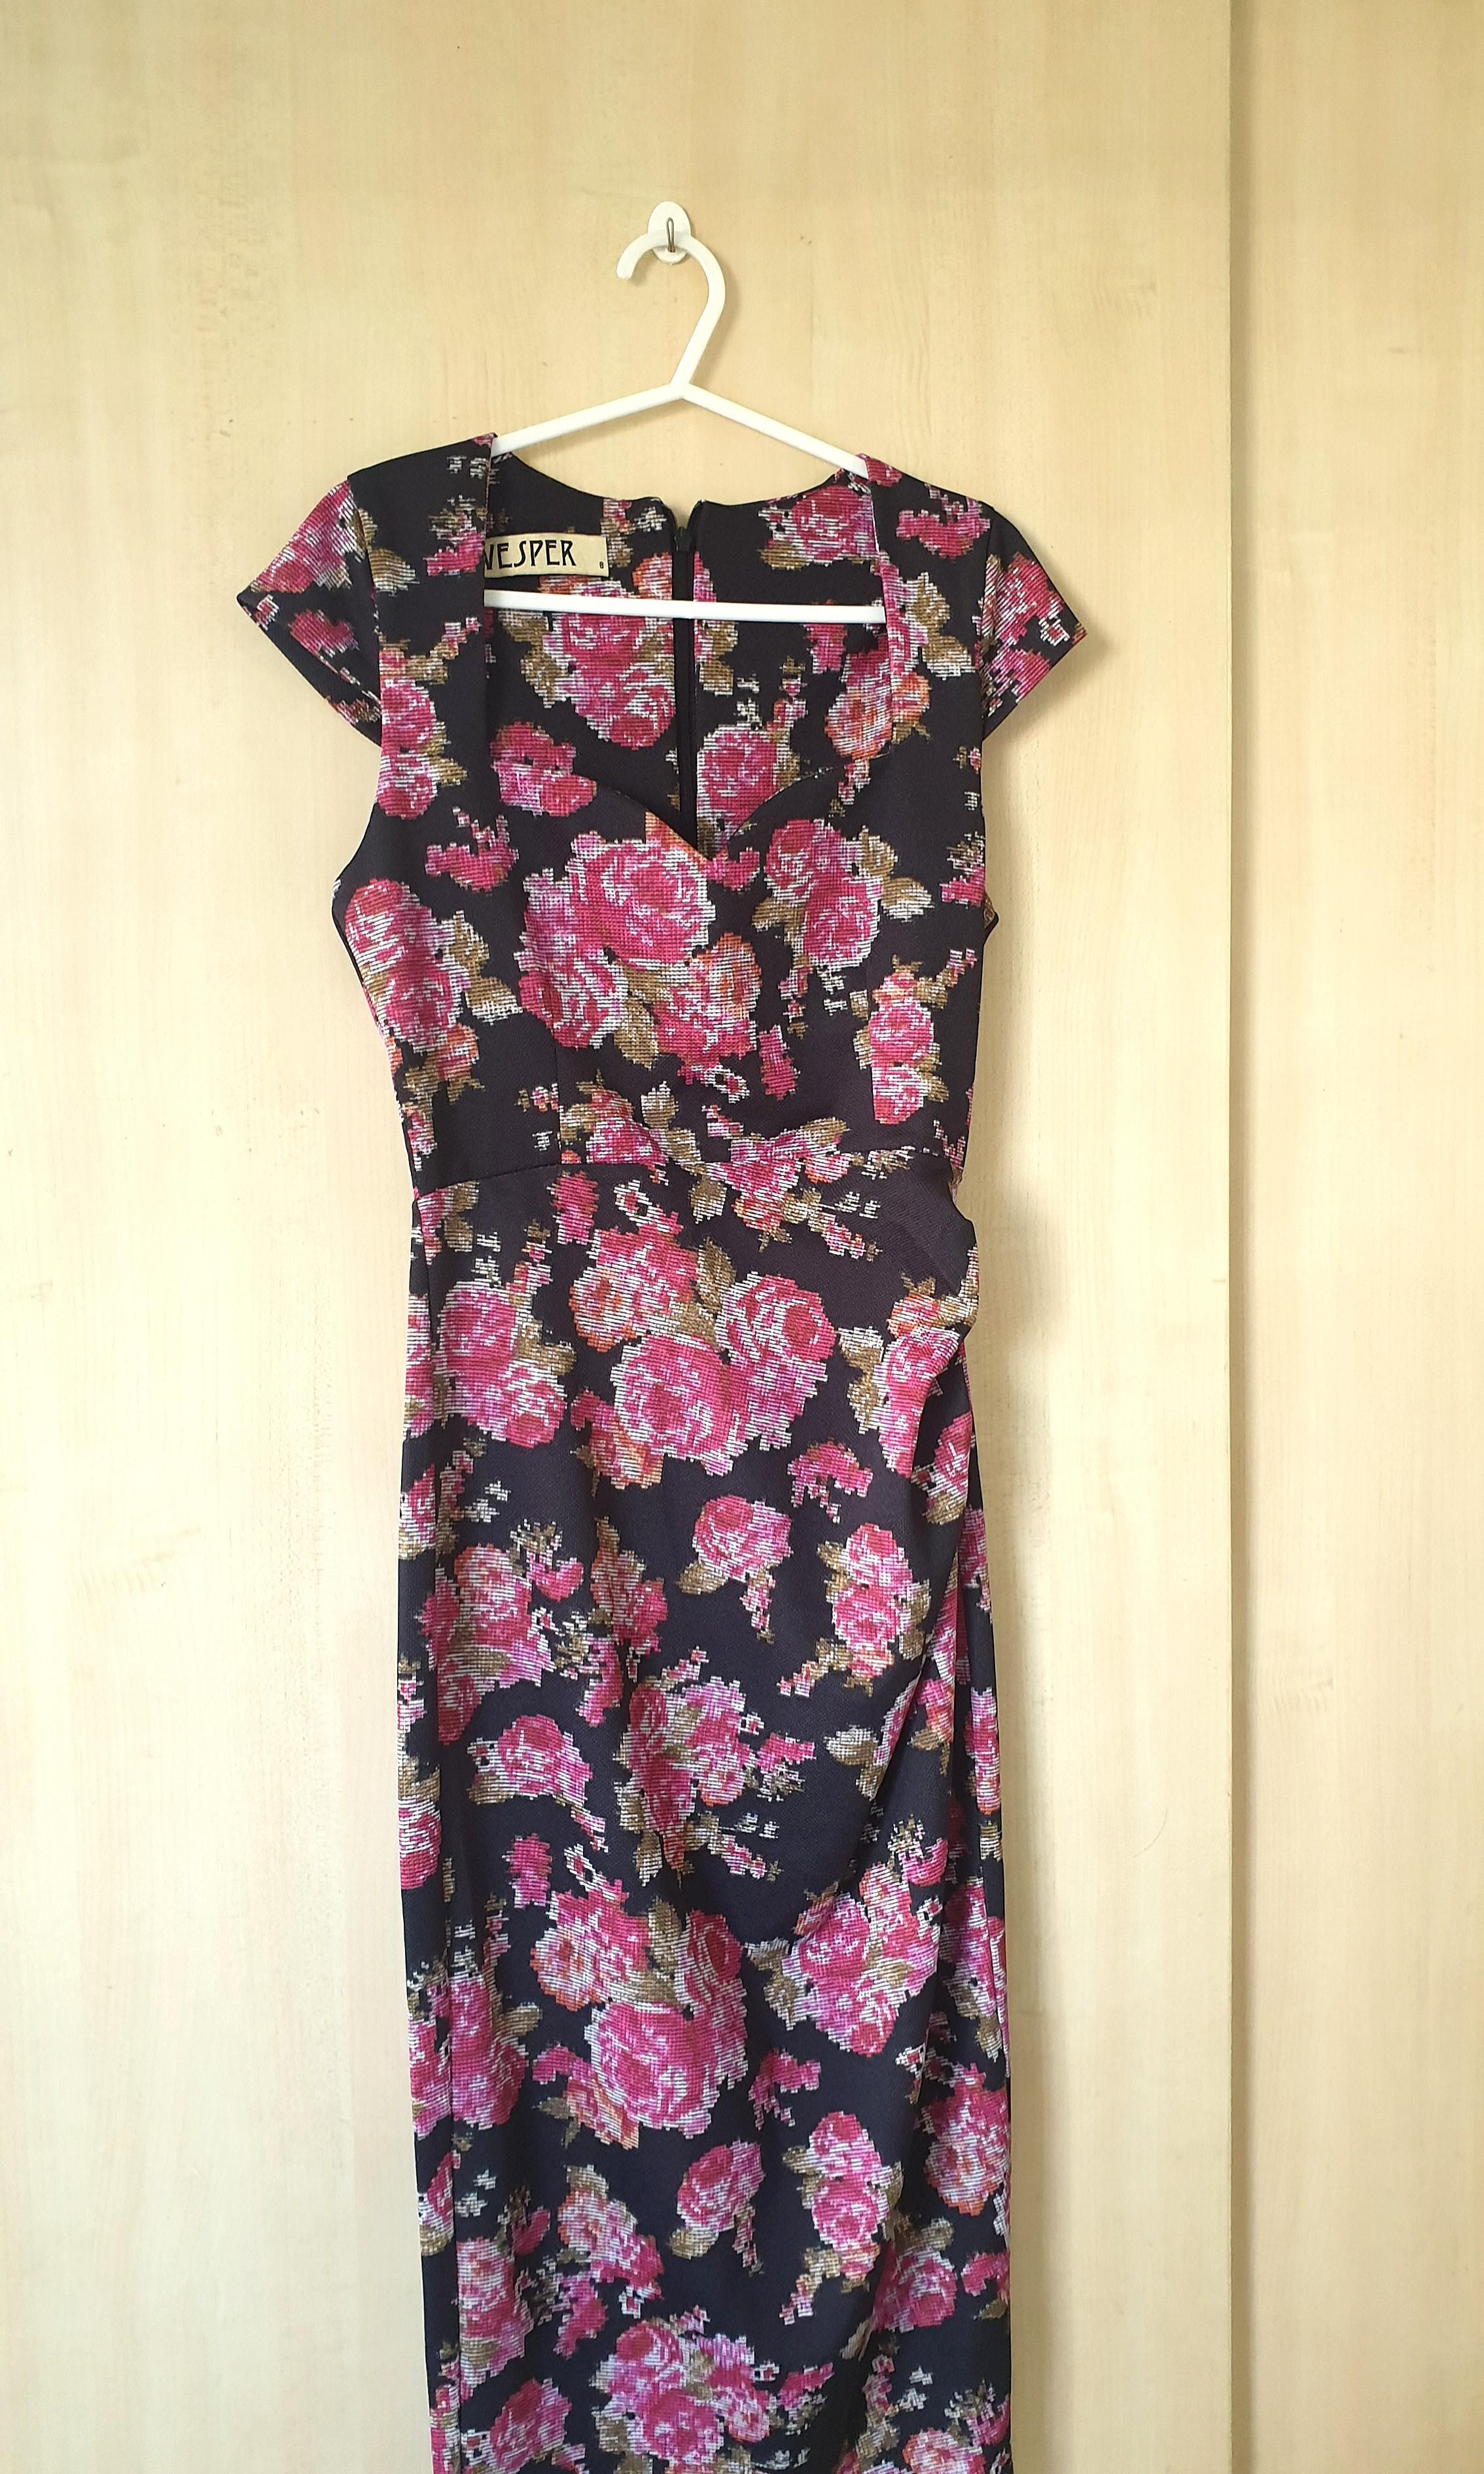 Authentic Vesper Pretty and sexy rose black tide dress